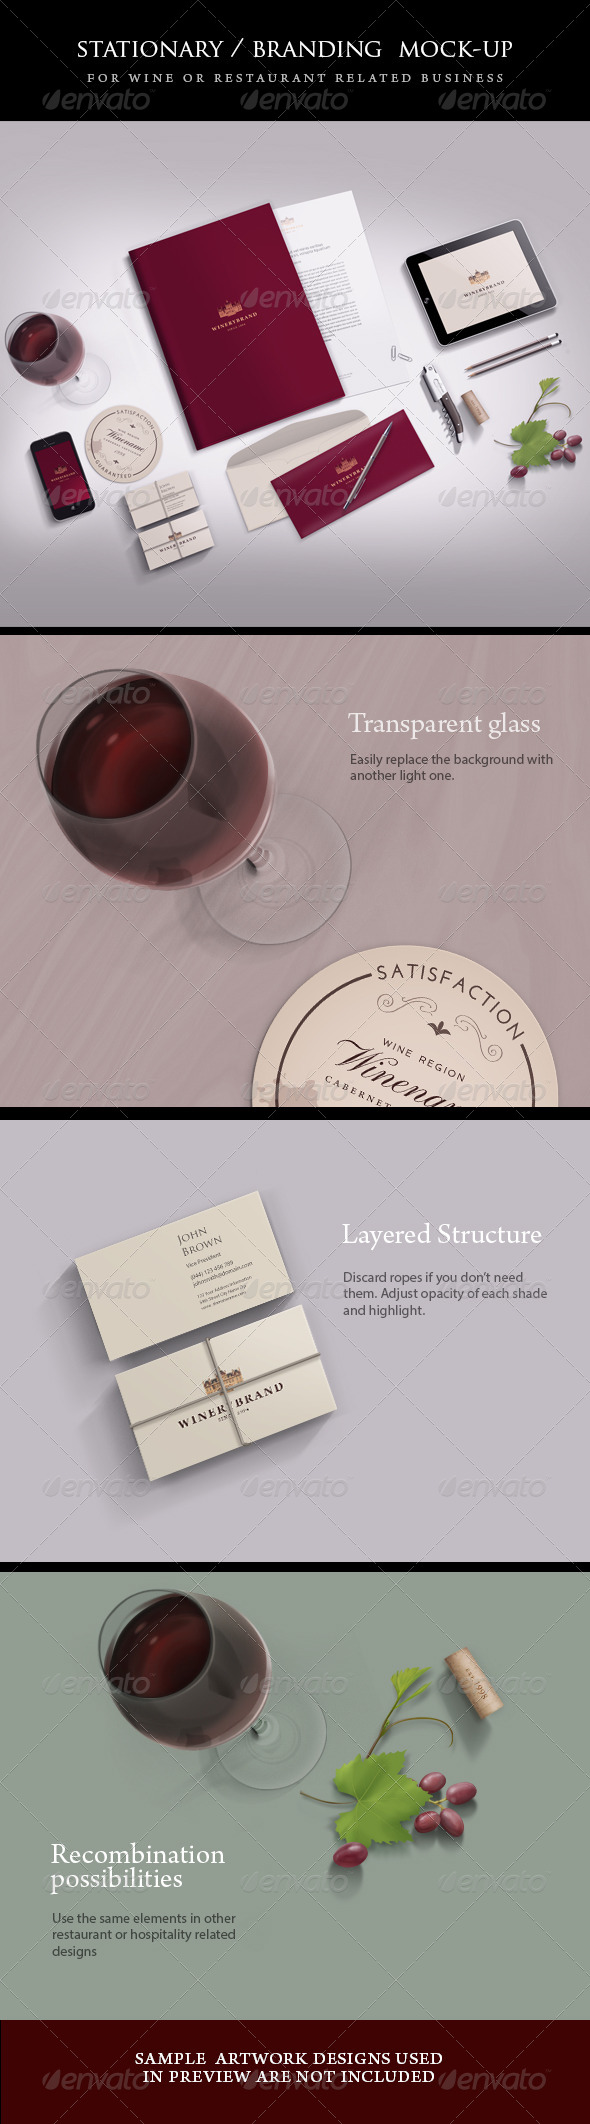 GraphicRiver Stationery Branding mock-up 5061910